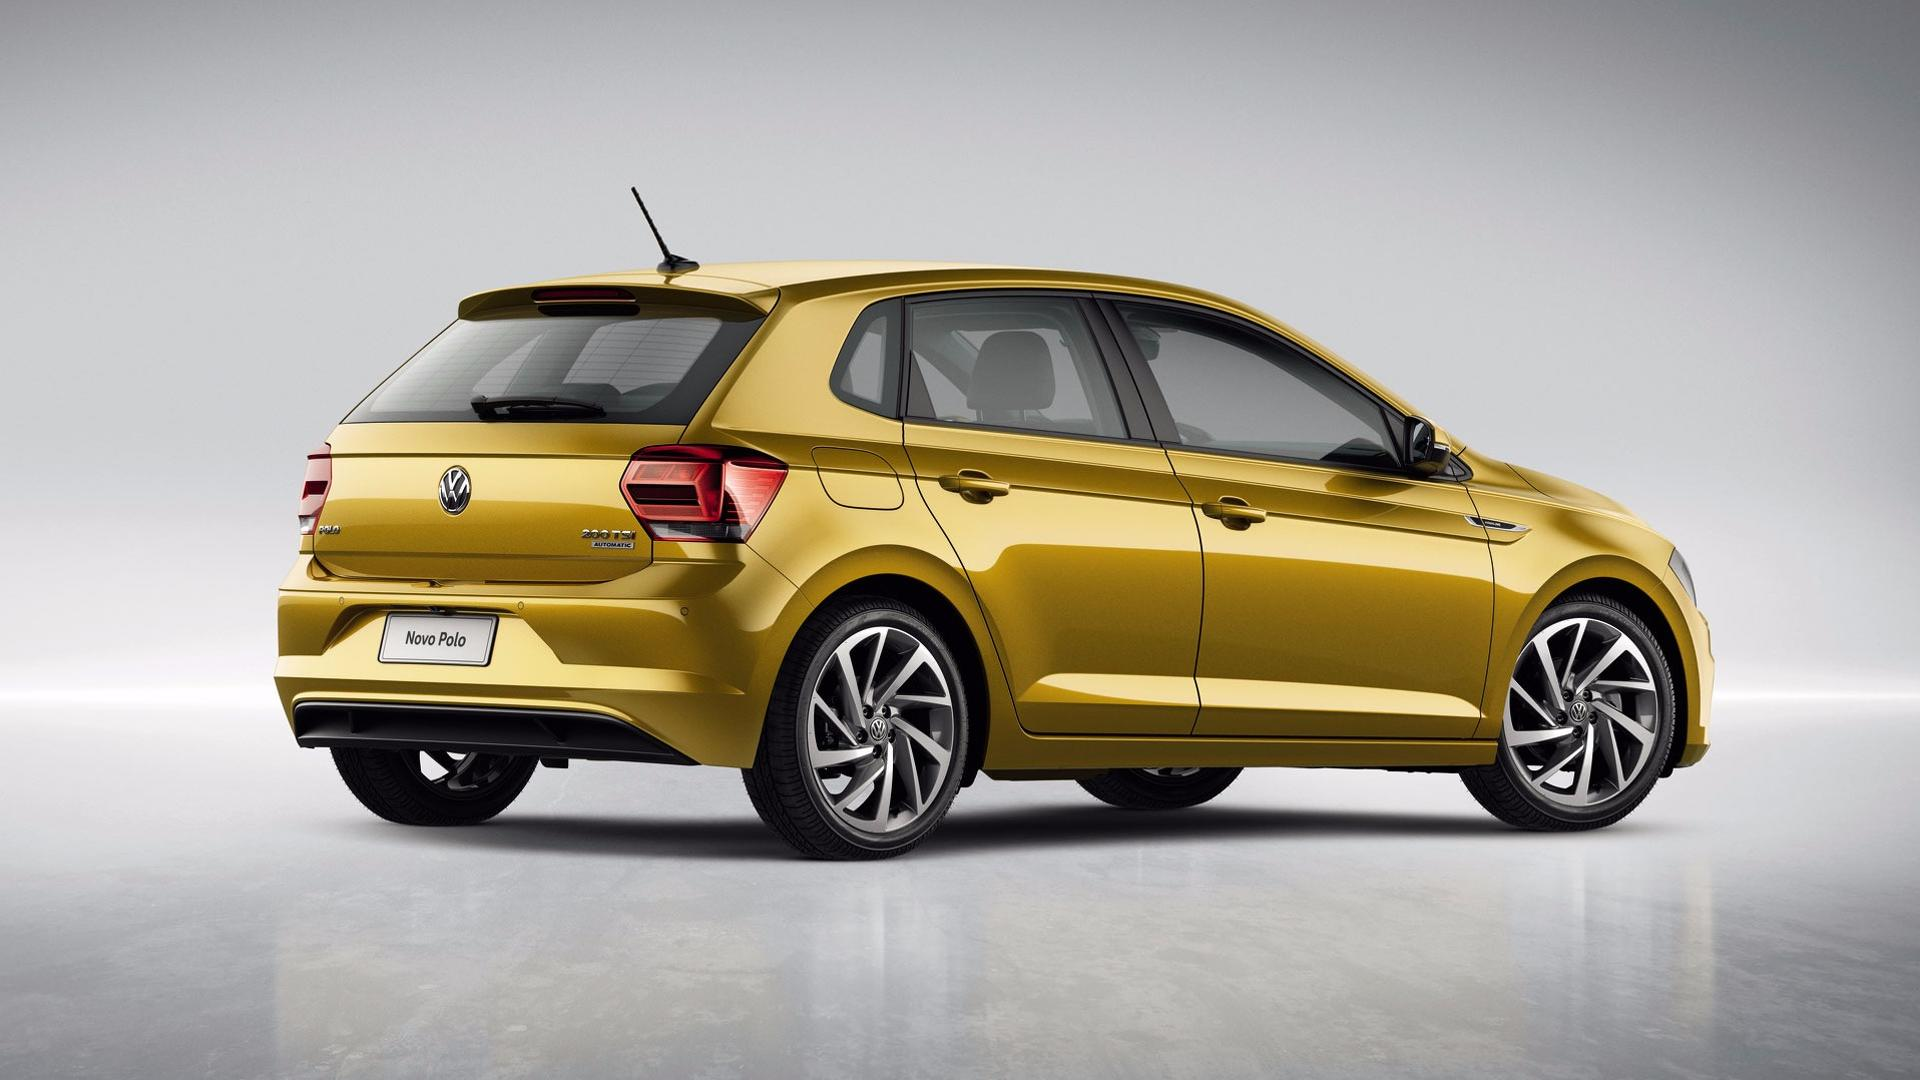 2018 volkswagen polo launched in brazil with 128 hp 1 0. Black Bedroom Furniture Sets. Home Design Ideas